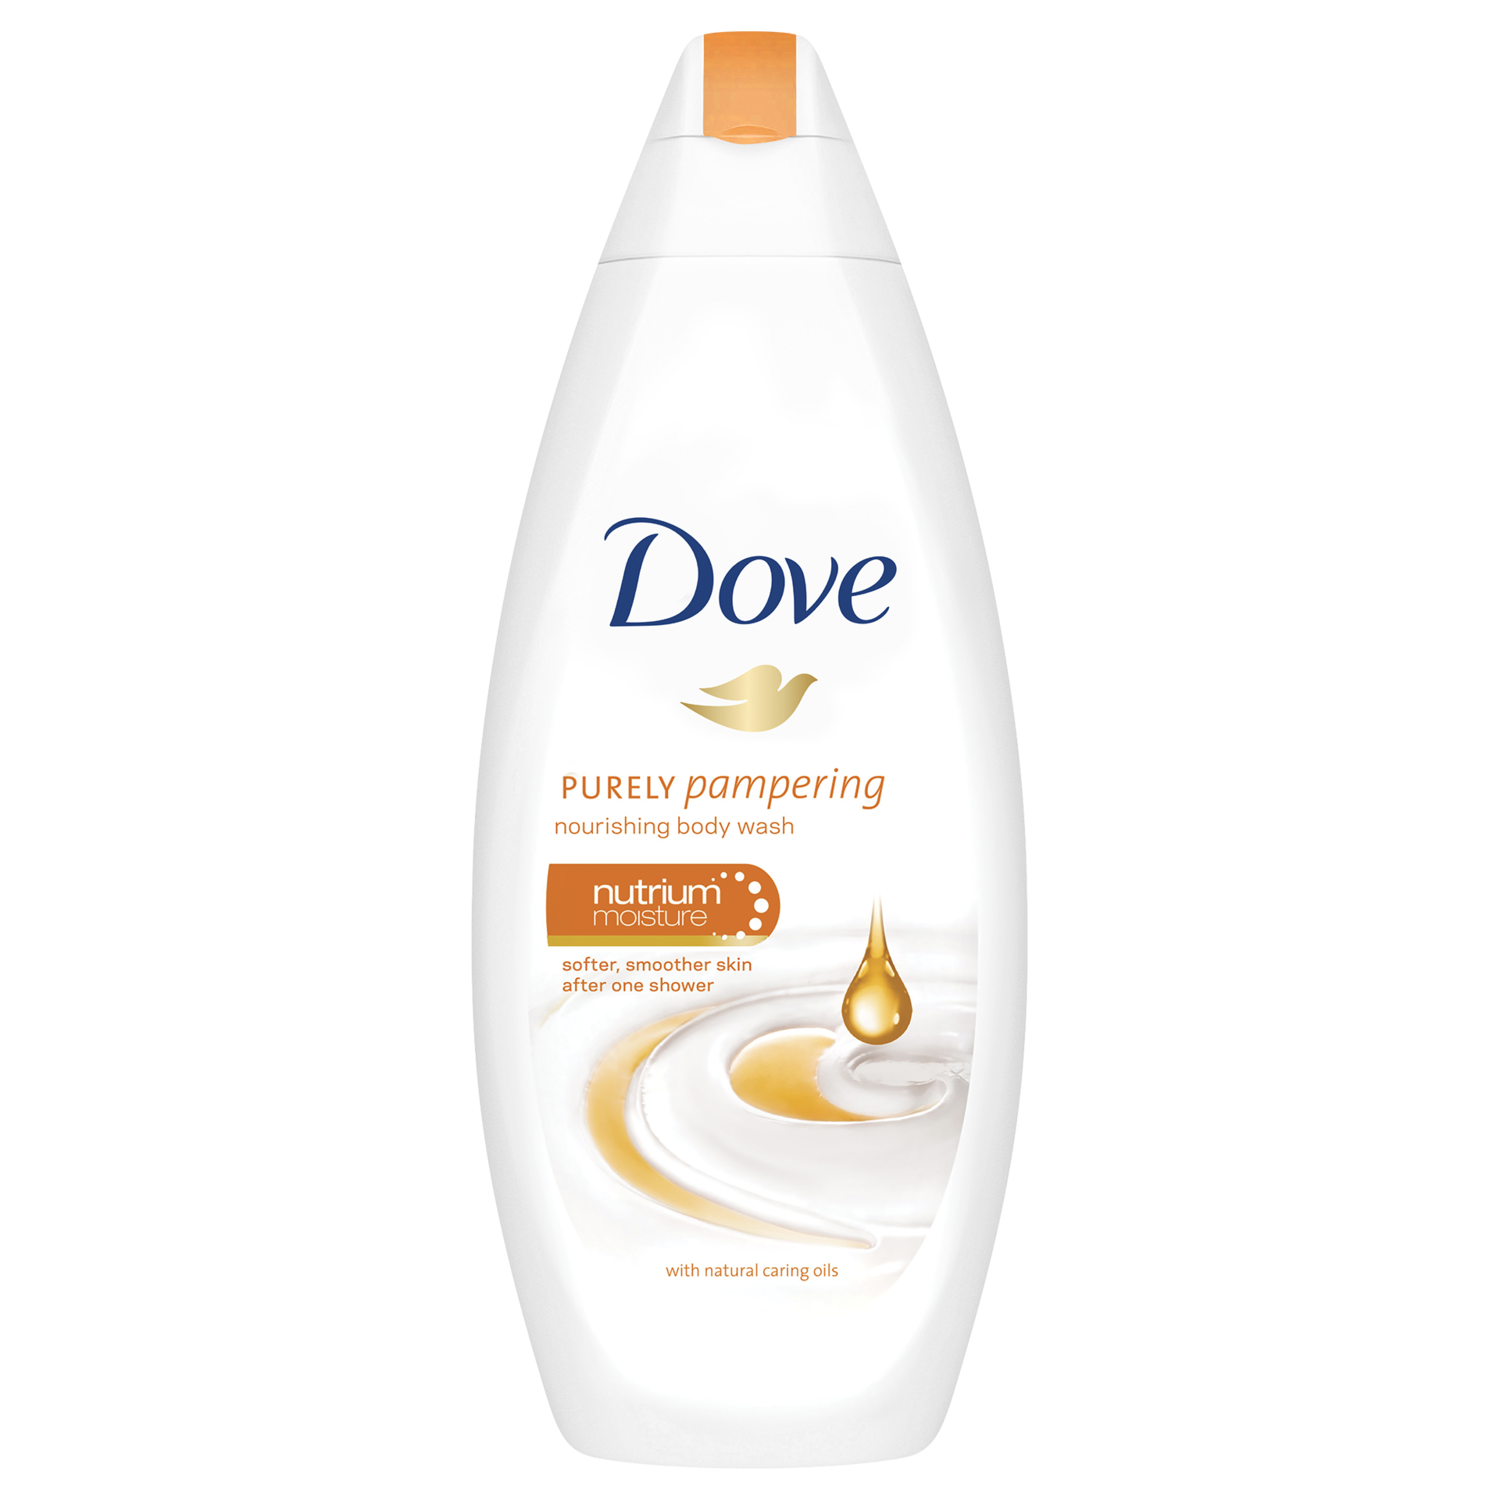 Dove Purely Pampering Natural Caring Oil Body Wash